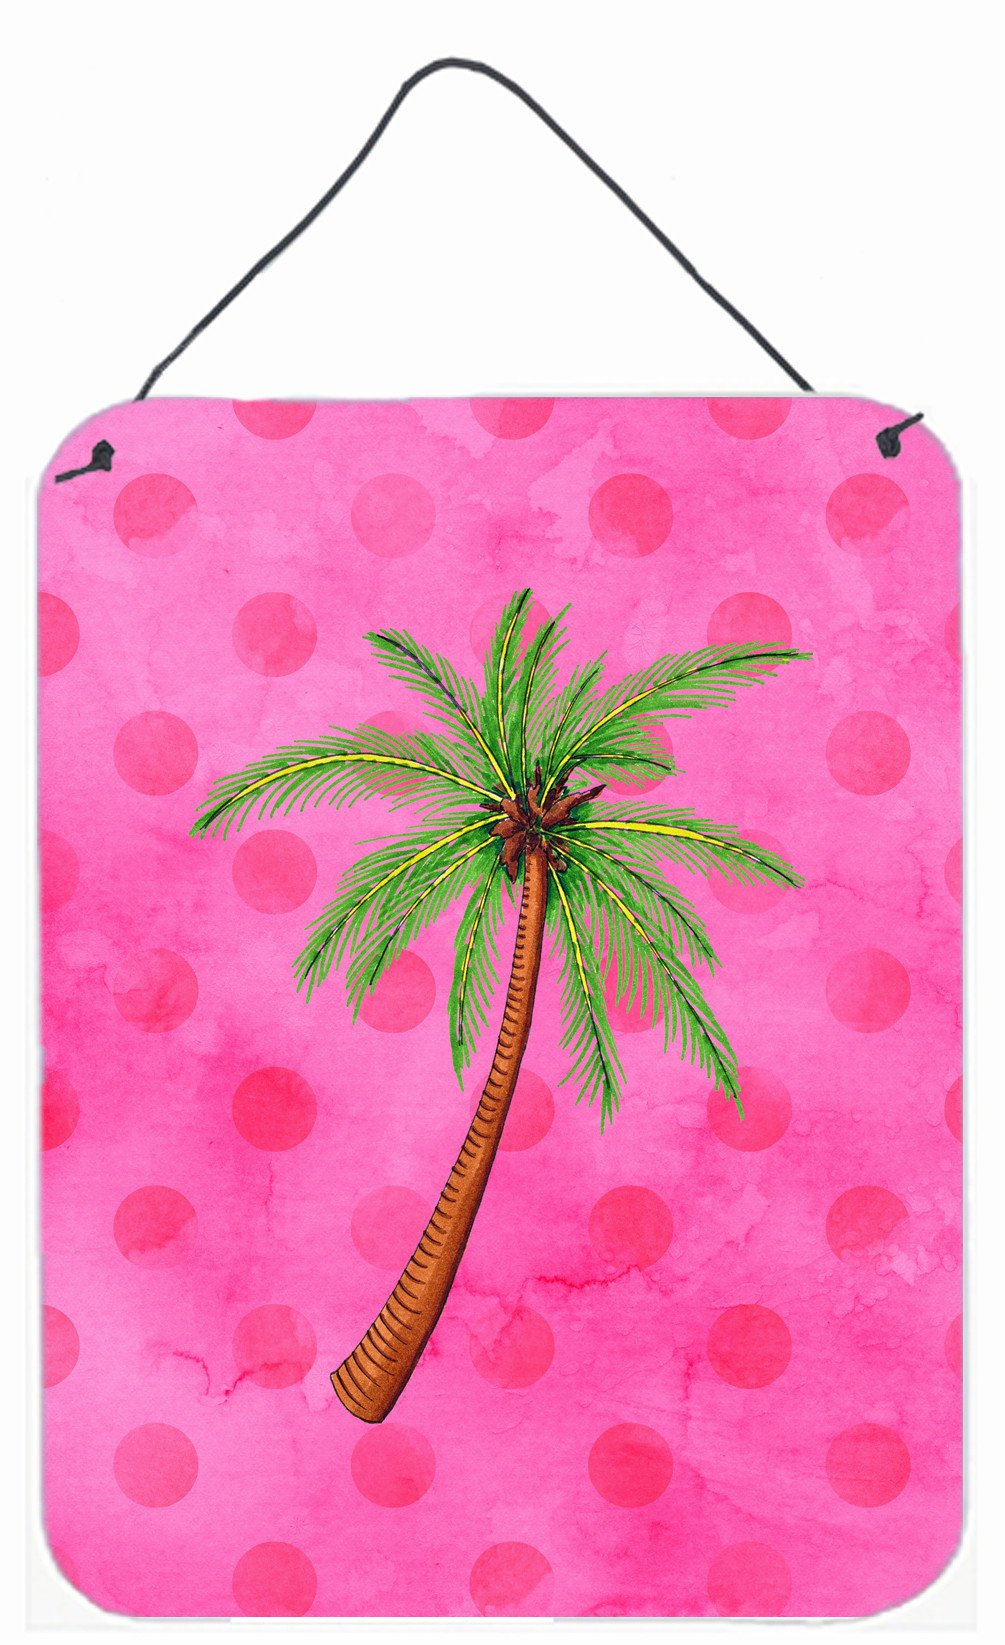 Palm Tree Pink Polkadot Wall or Door Hanging Prints BB8169DS1216 by Caroline's Treasures